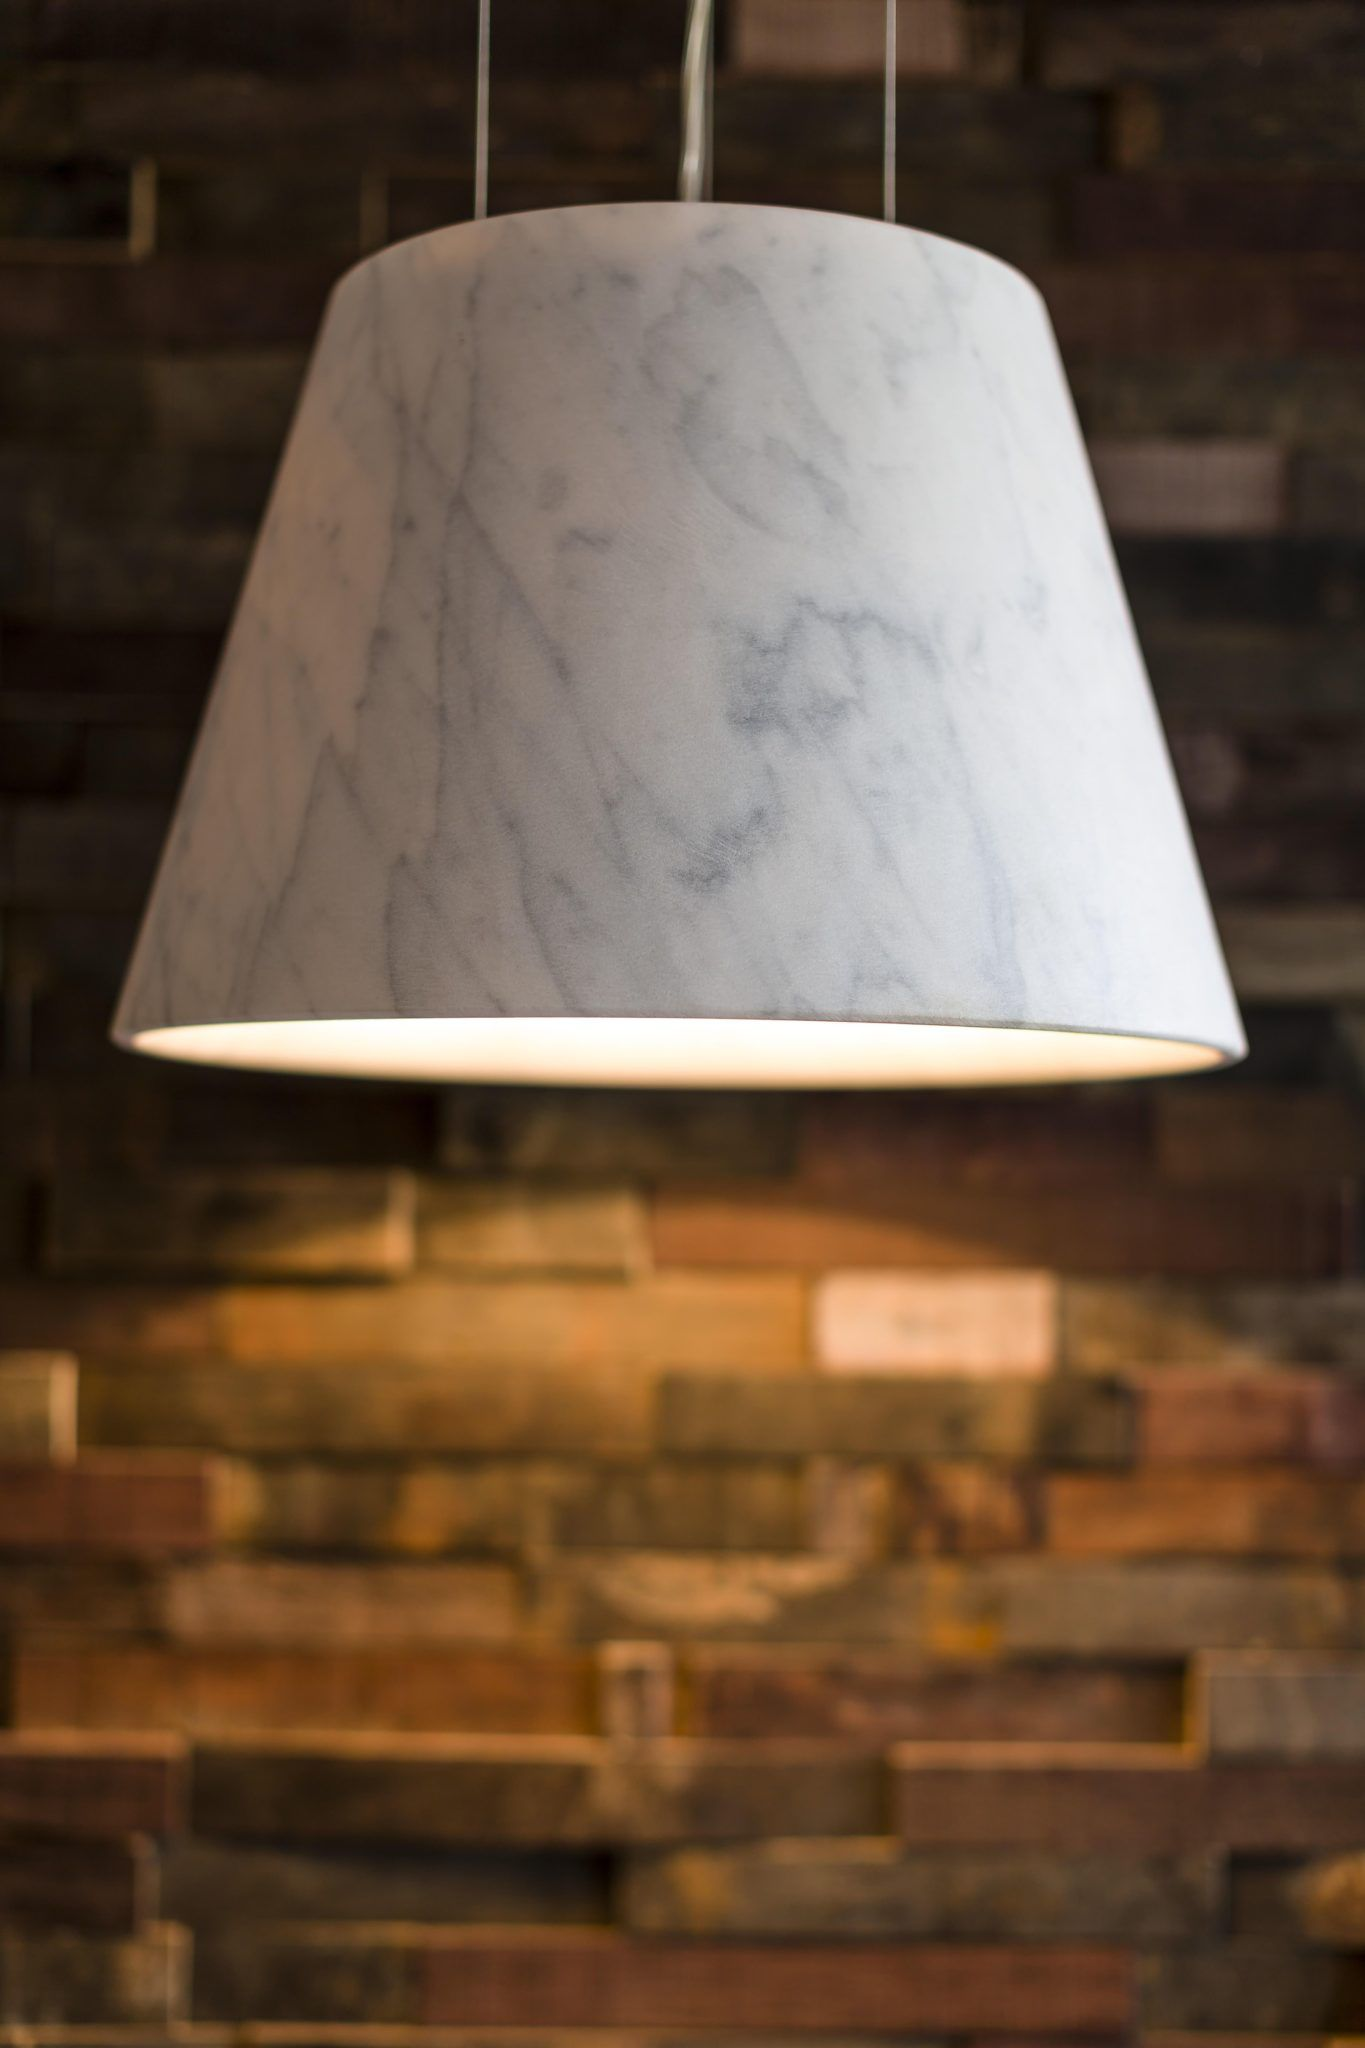 carrara-stone-pendant-in-situ-1